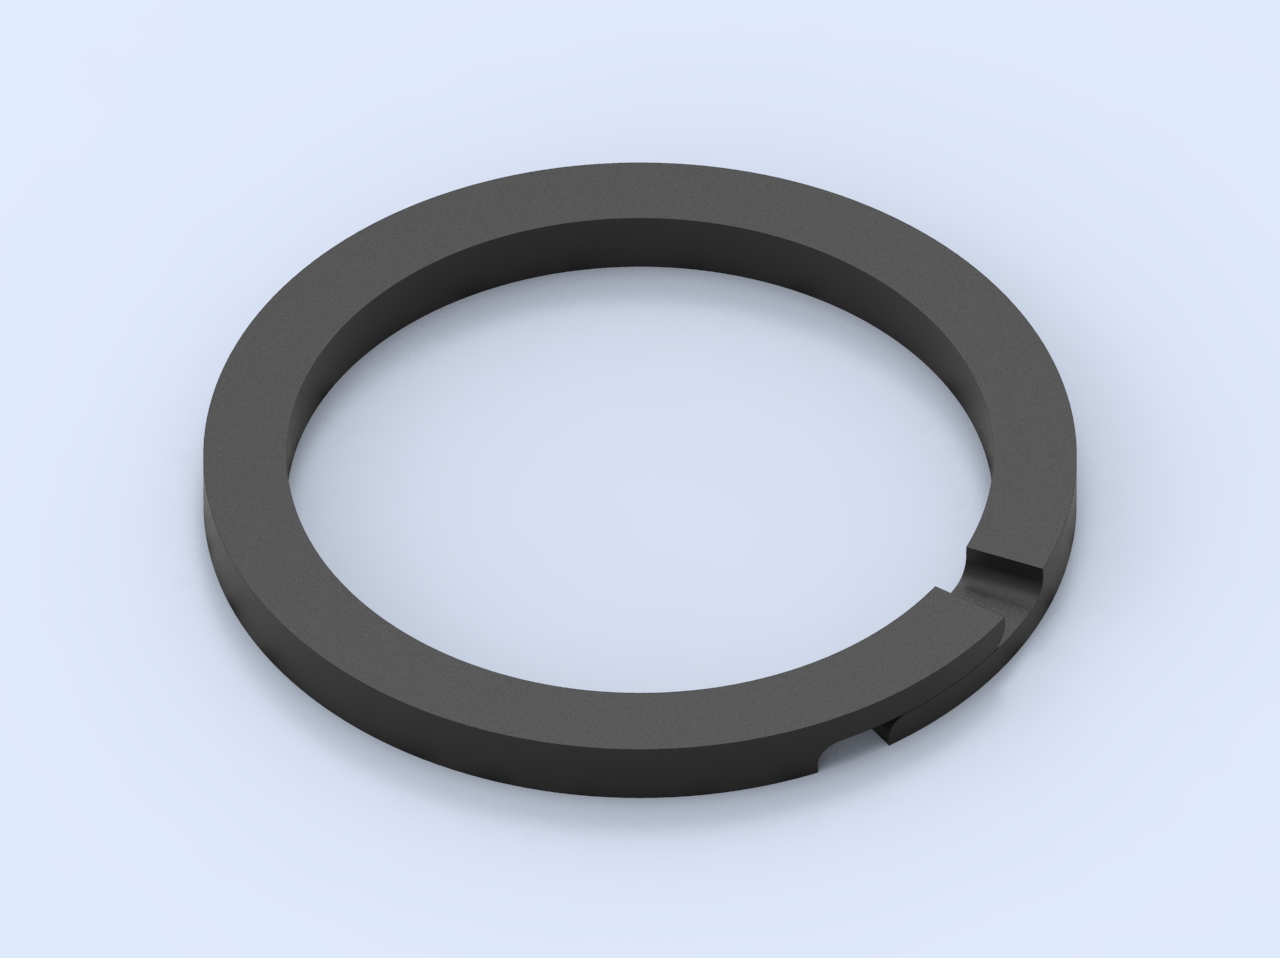 Piston ring - overlapped joint